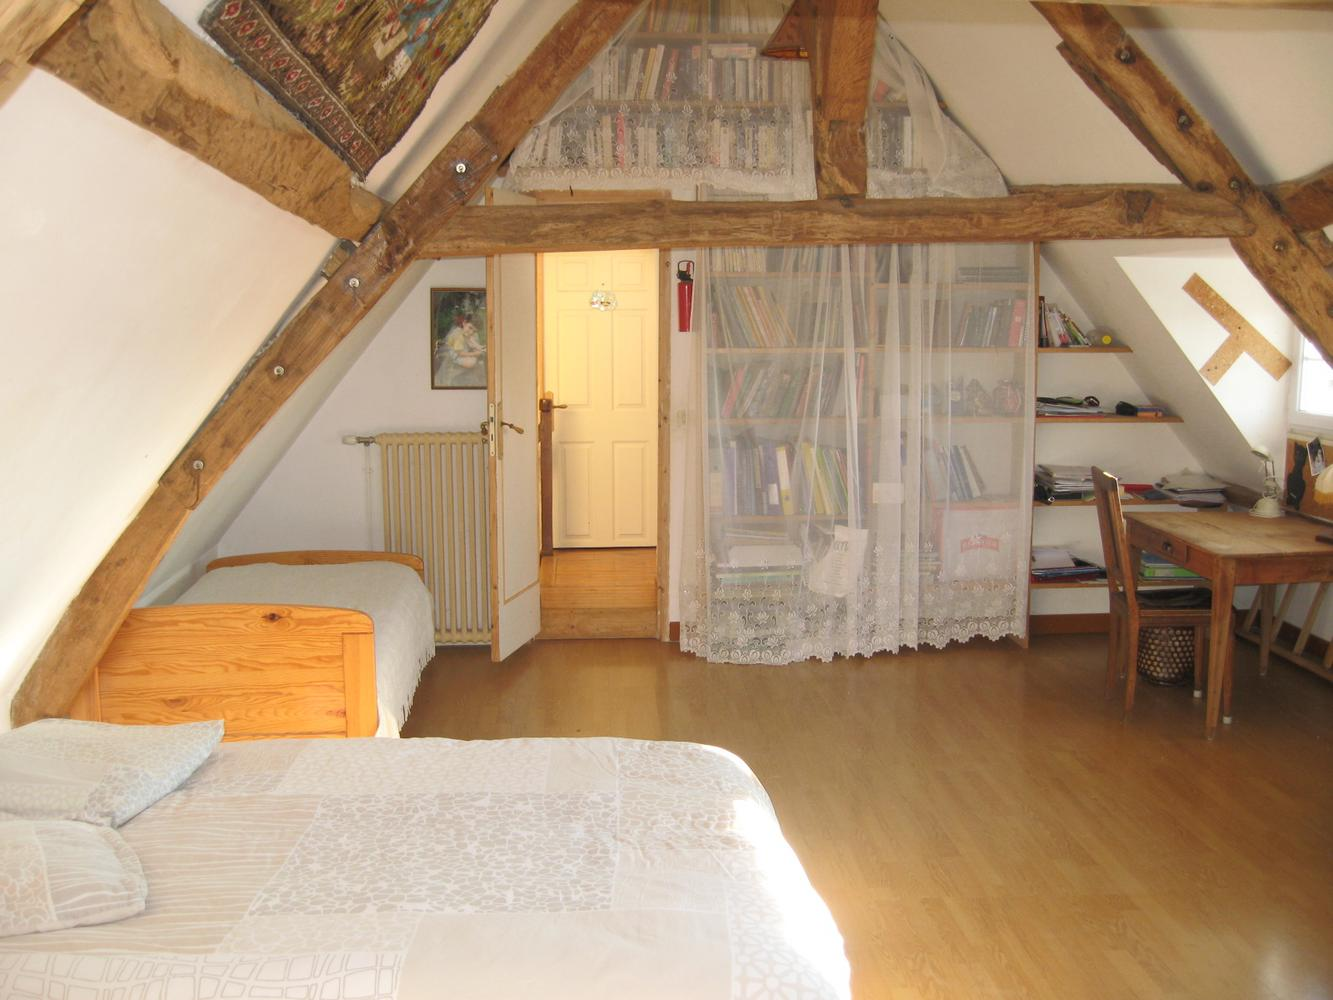 Chambre 3*** 1001 nuits en Berry, Indre - photo #4